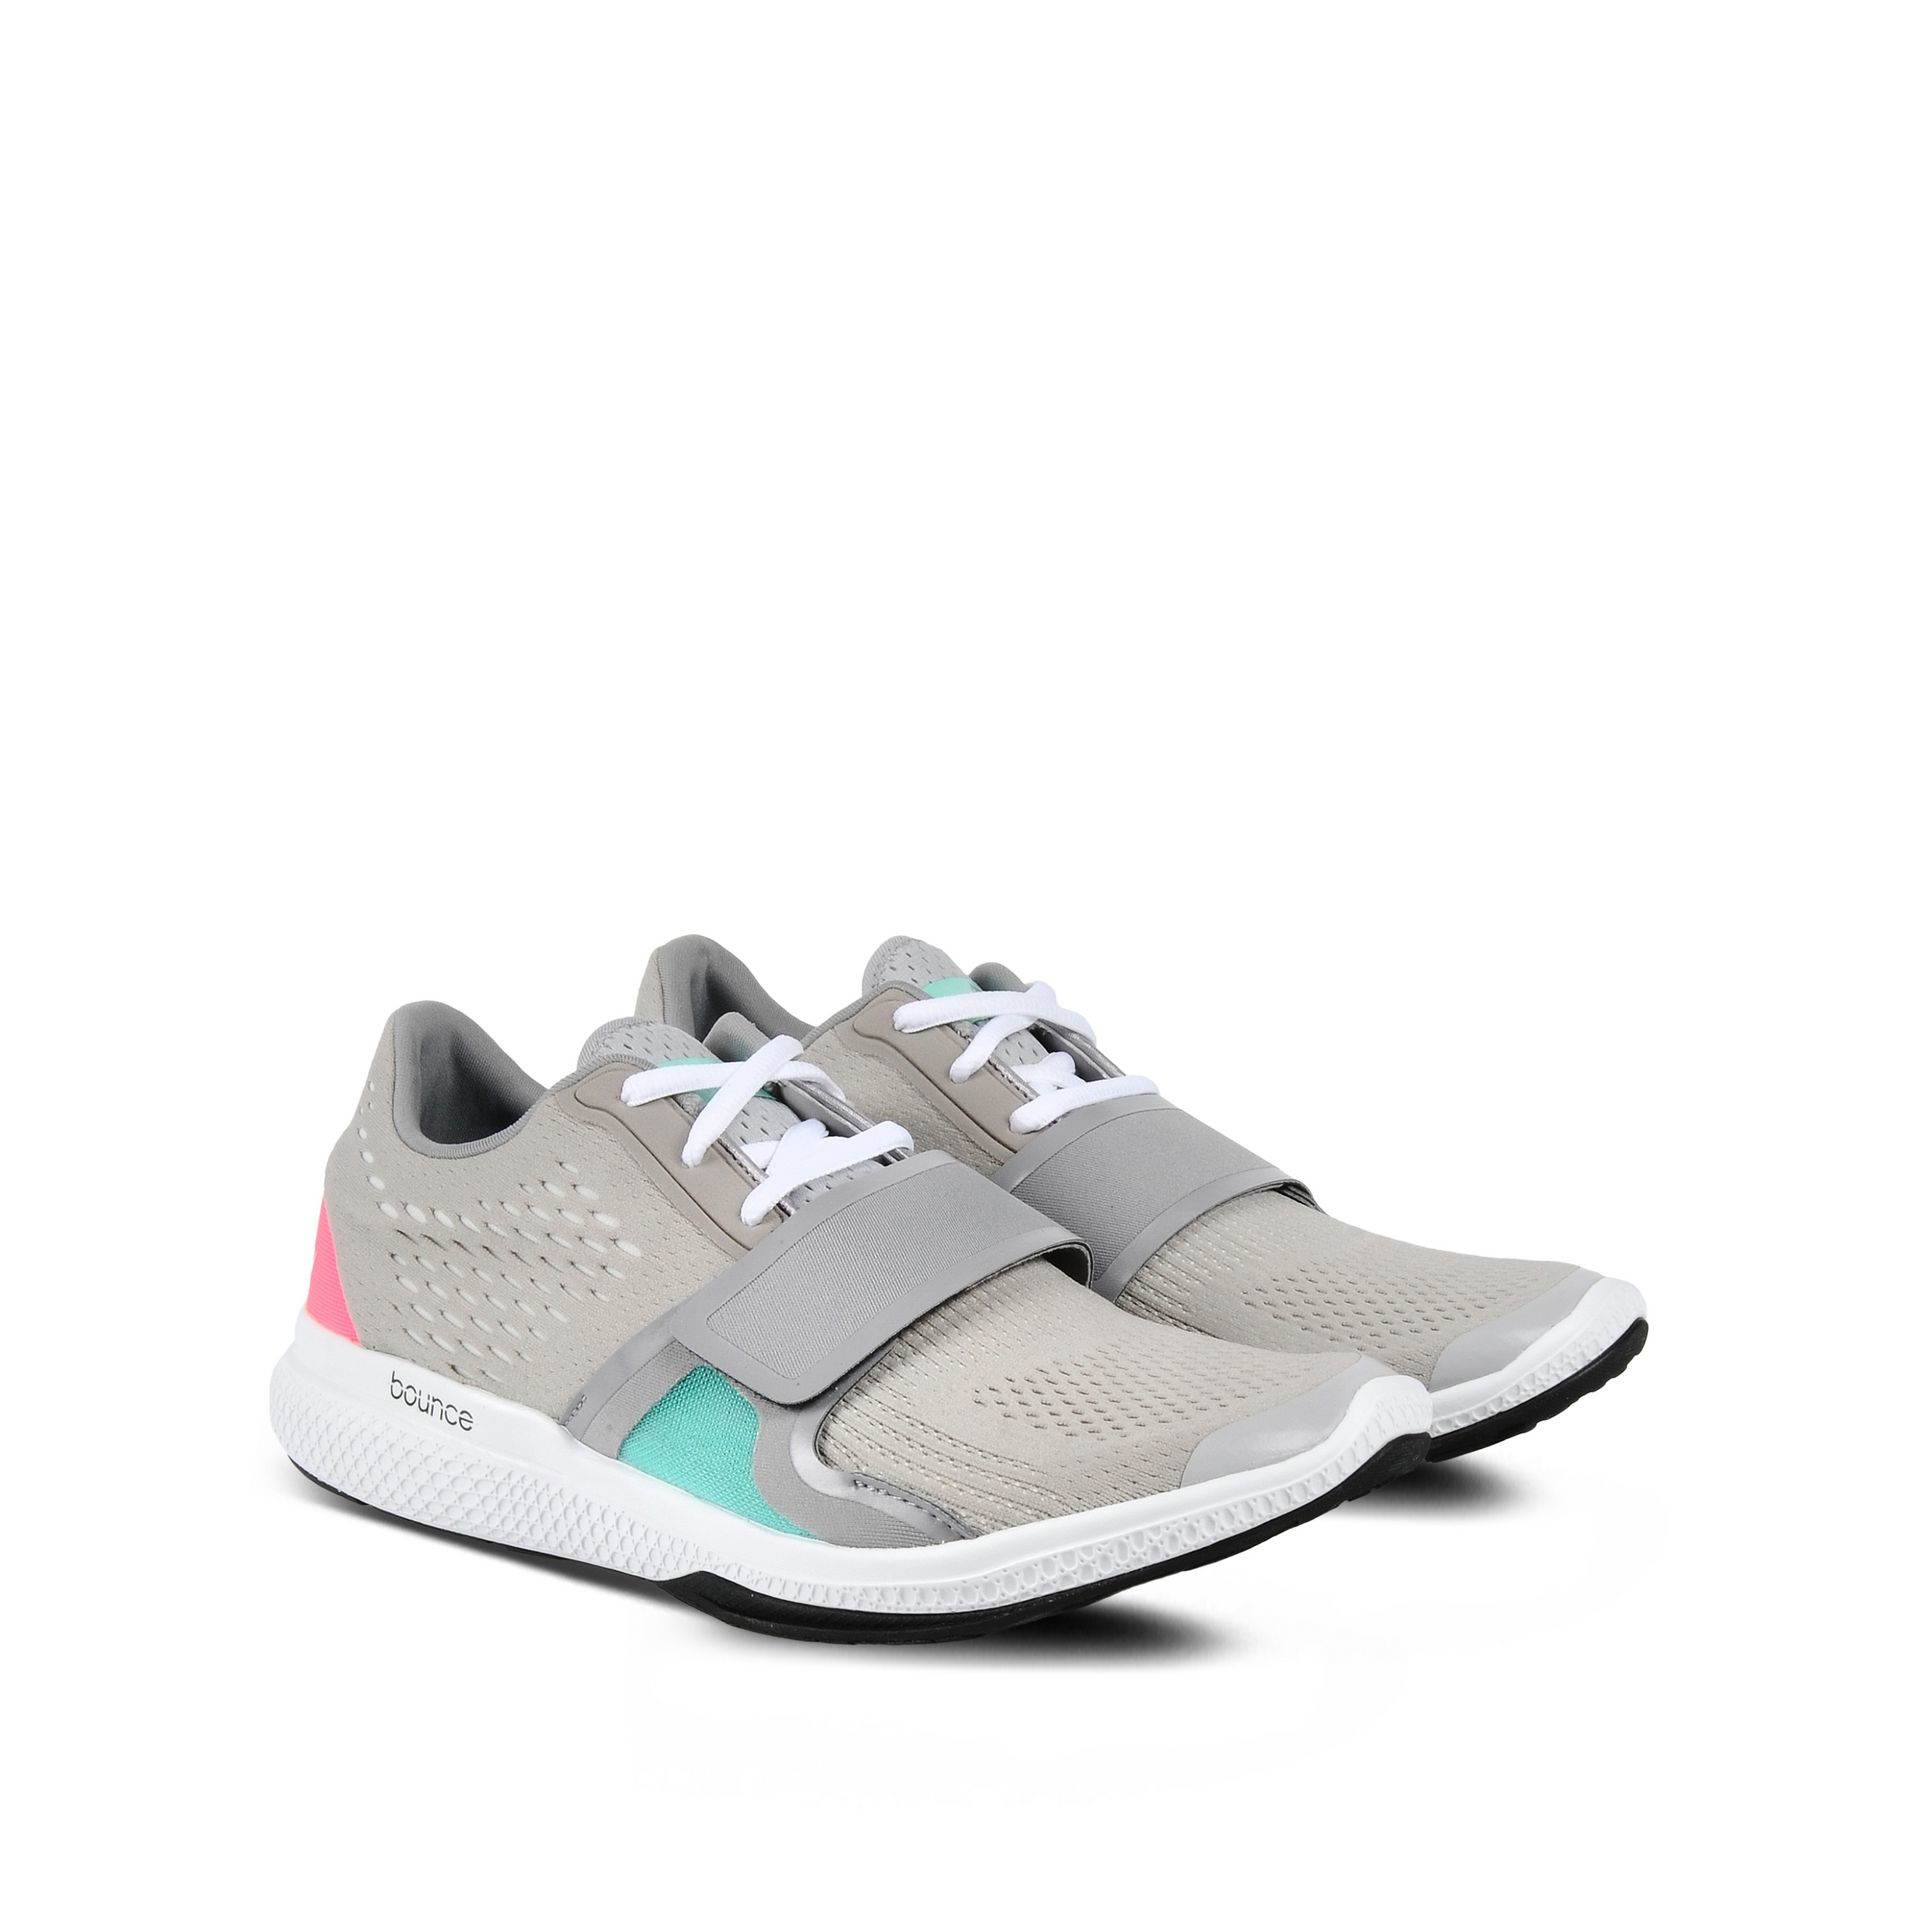 2b7714853b8d in Mccartney Lyst Running Stella Adidas Gray Bounce Shoes By wta0t